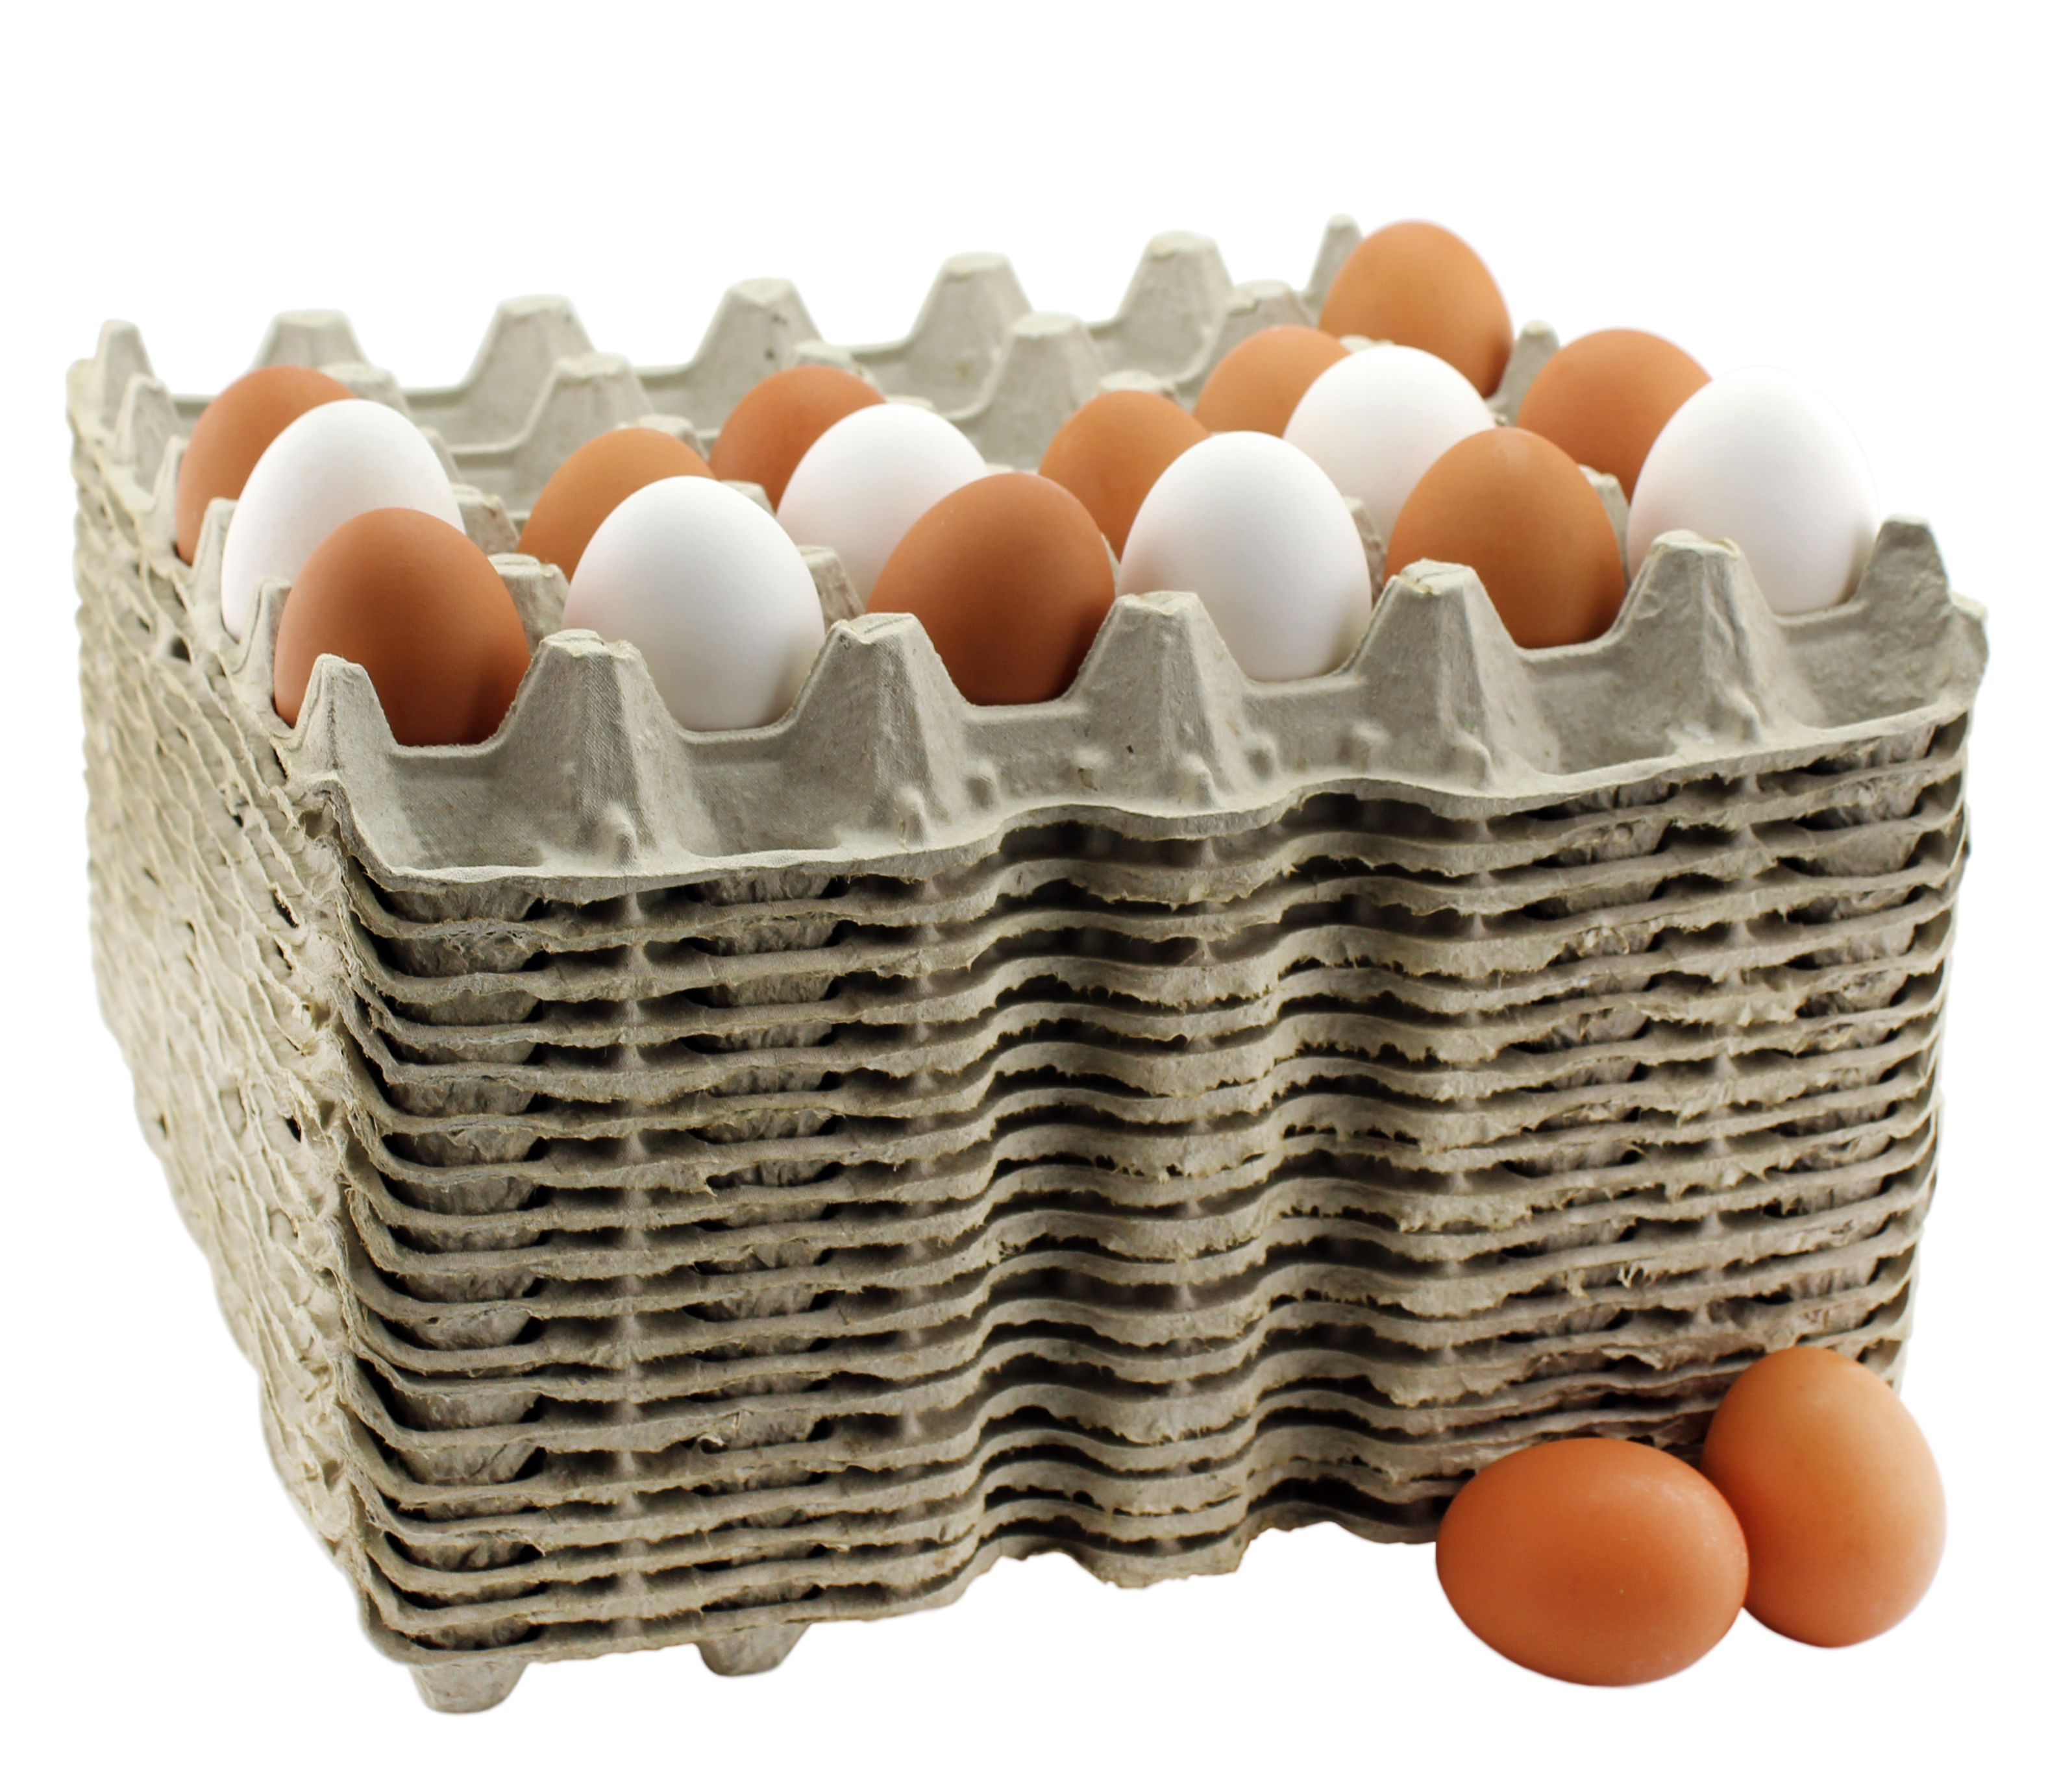 B07C55X4LS - 30-Count Egg Flats (18 Trays) 3